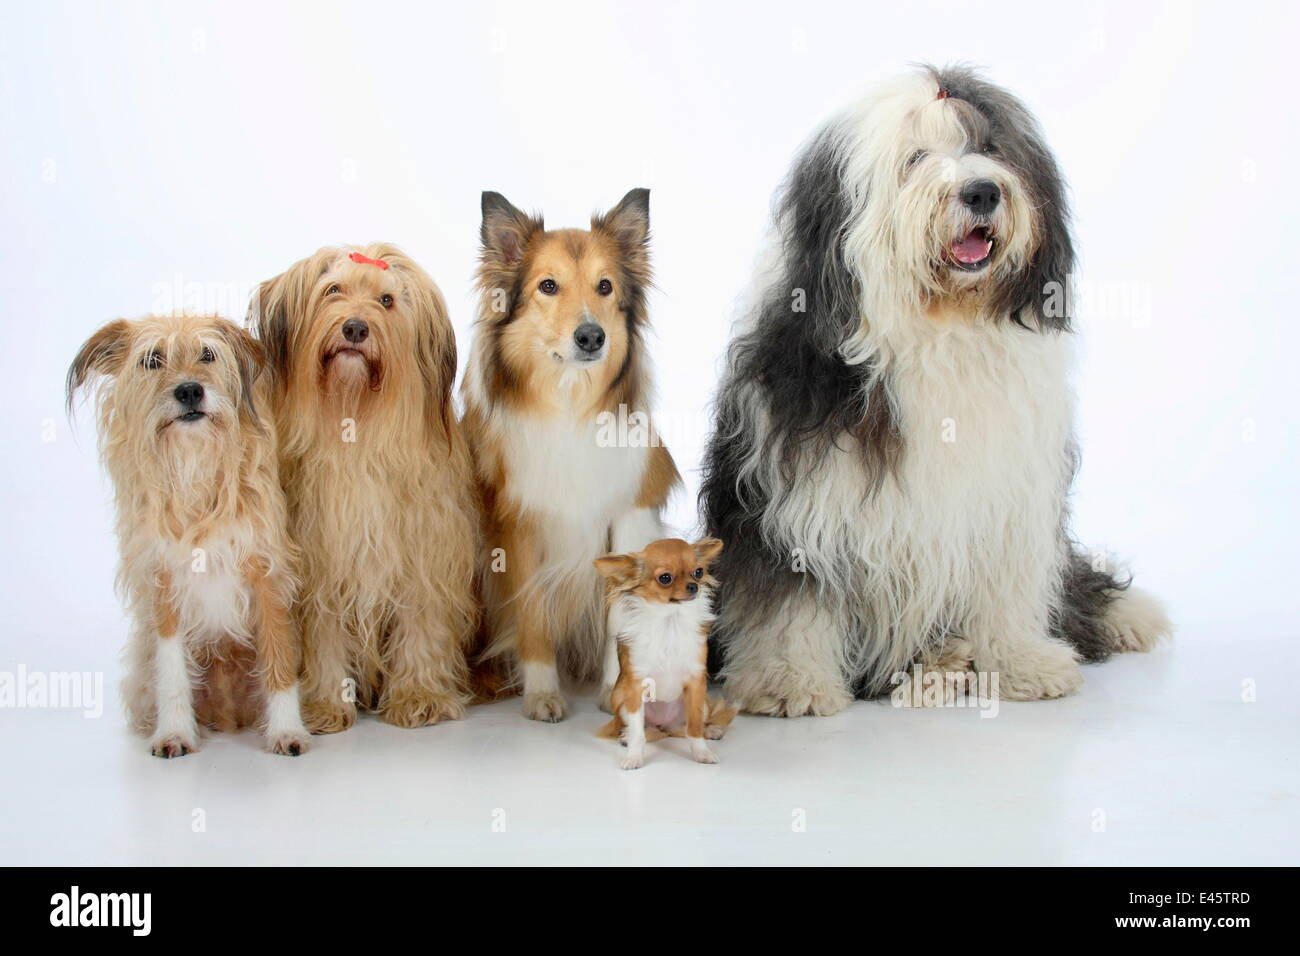 Group portrait of five dogs sitting, from left to rt: two mongrels, Rough Collie, Bobtail (Old English Sheepdog) - Stock Image